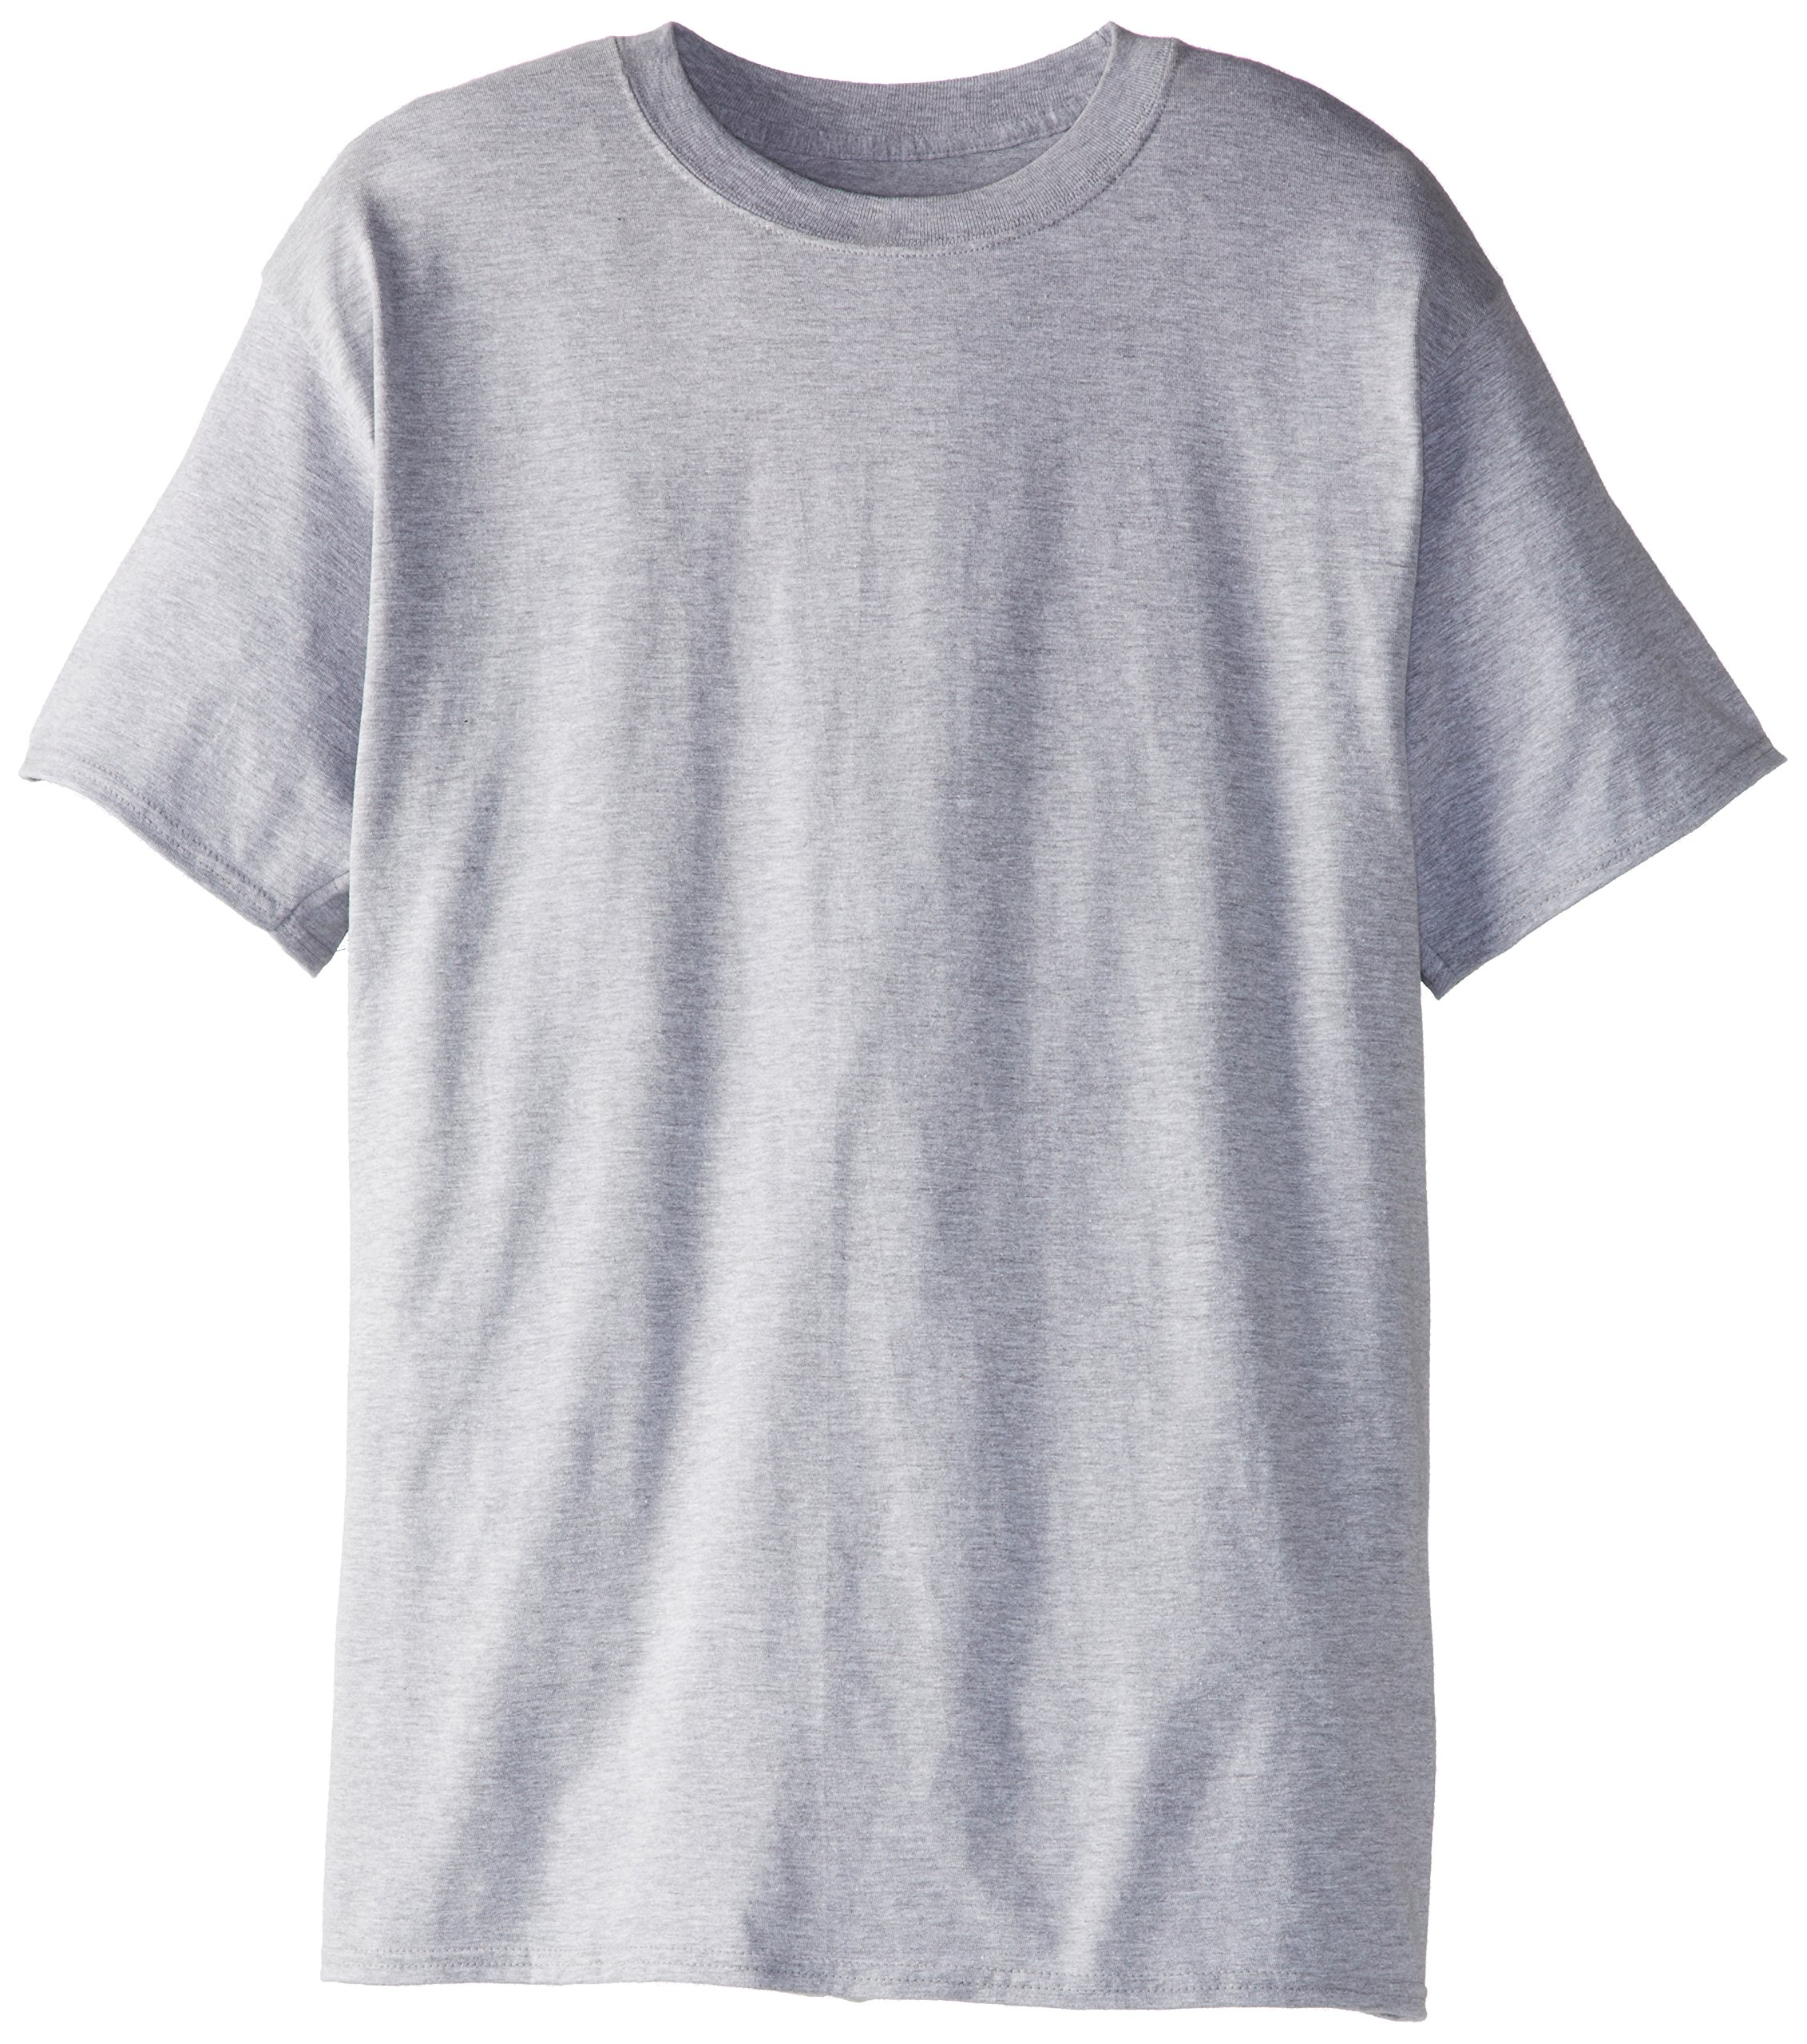 Hanes Men's Tall Short Sleeve Beefy-T, Light Steel, X-Large/Tall (Pack of 2)